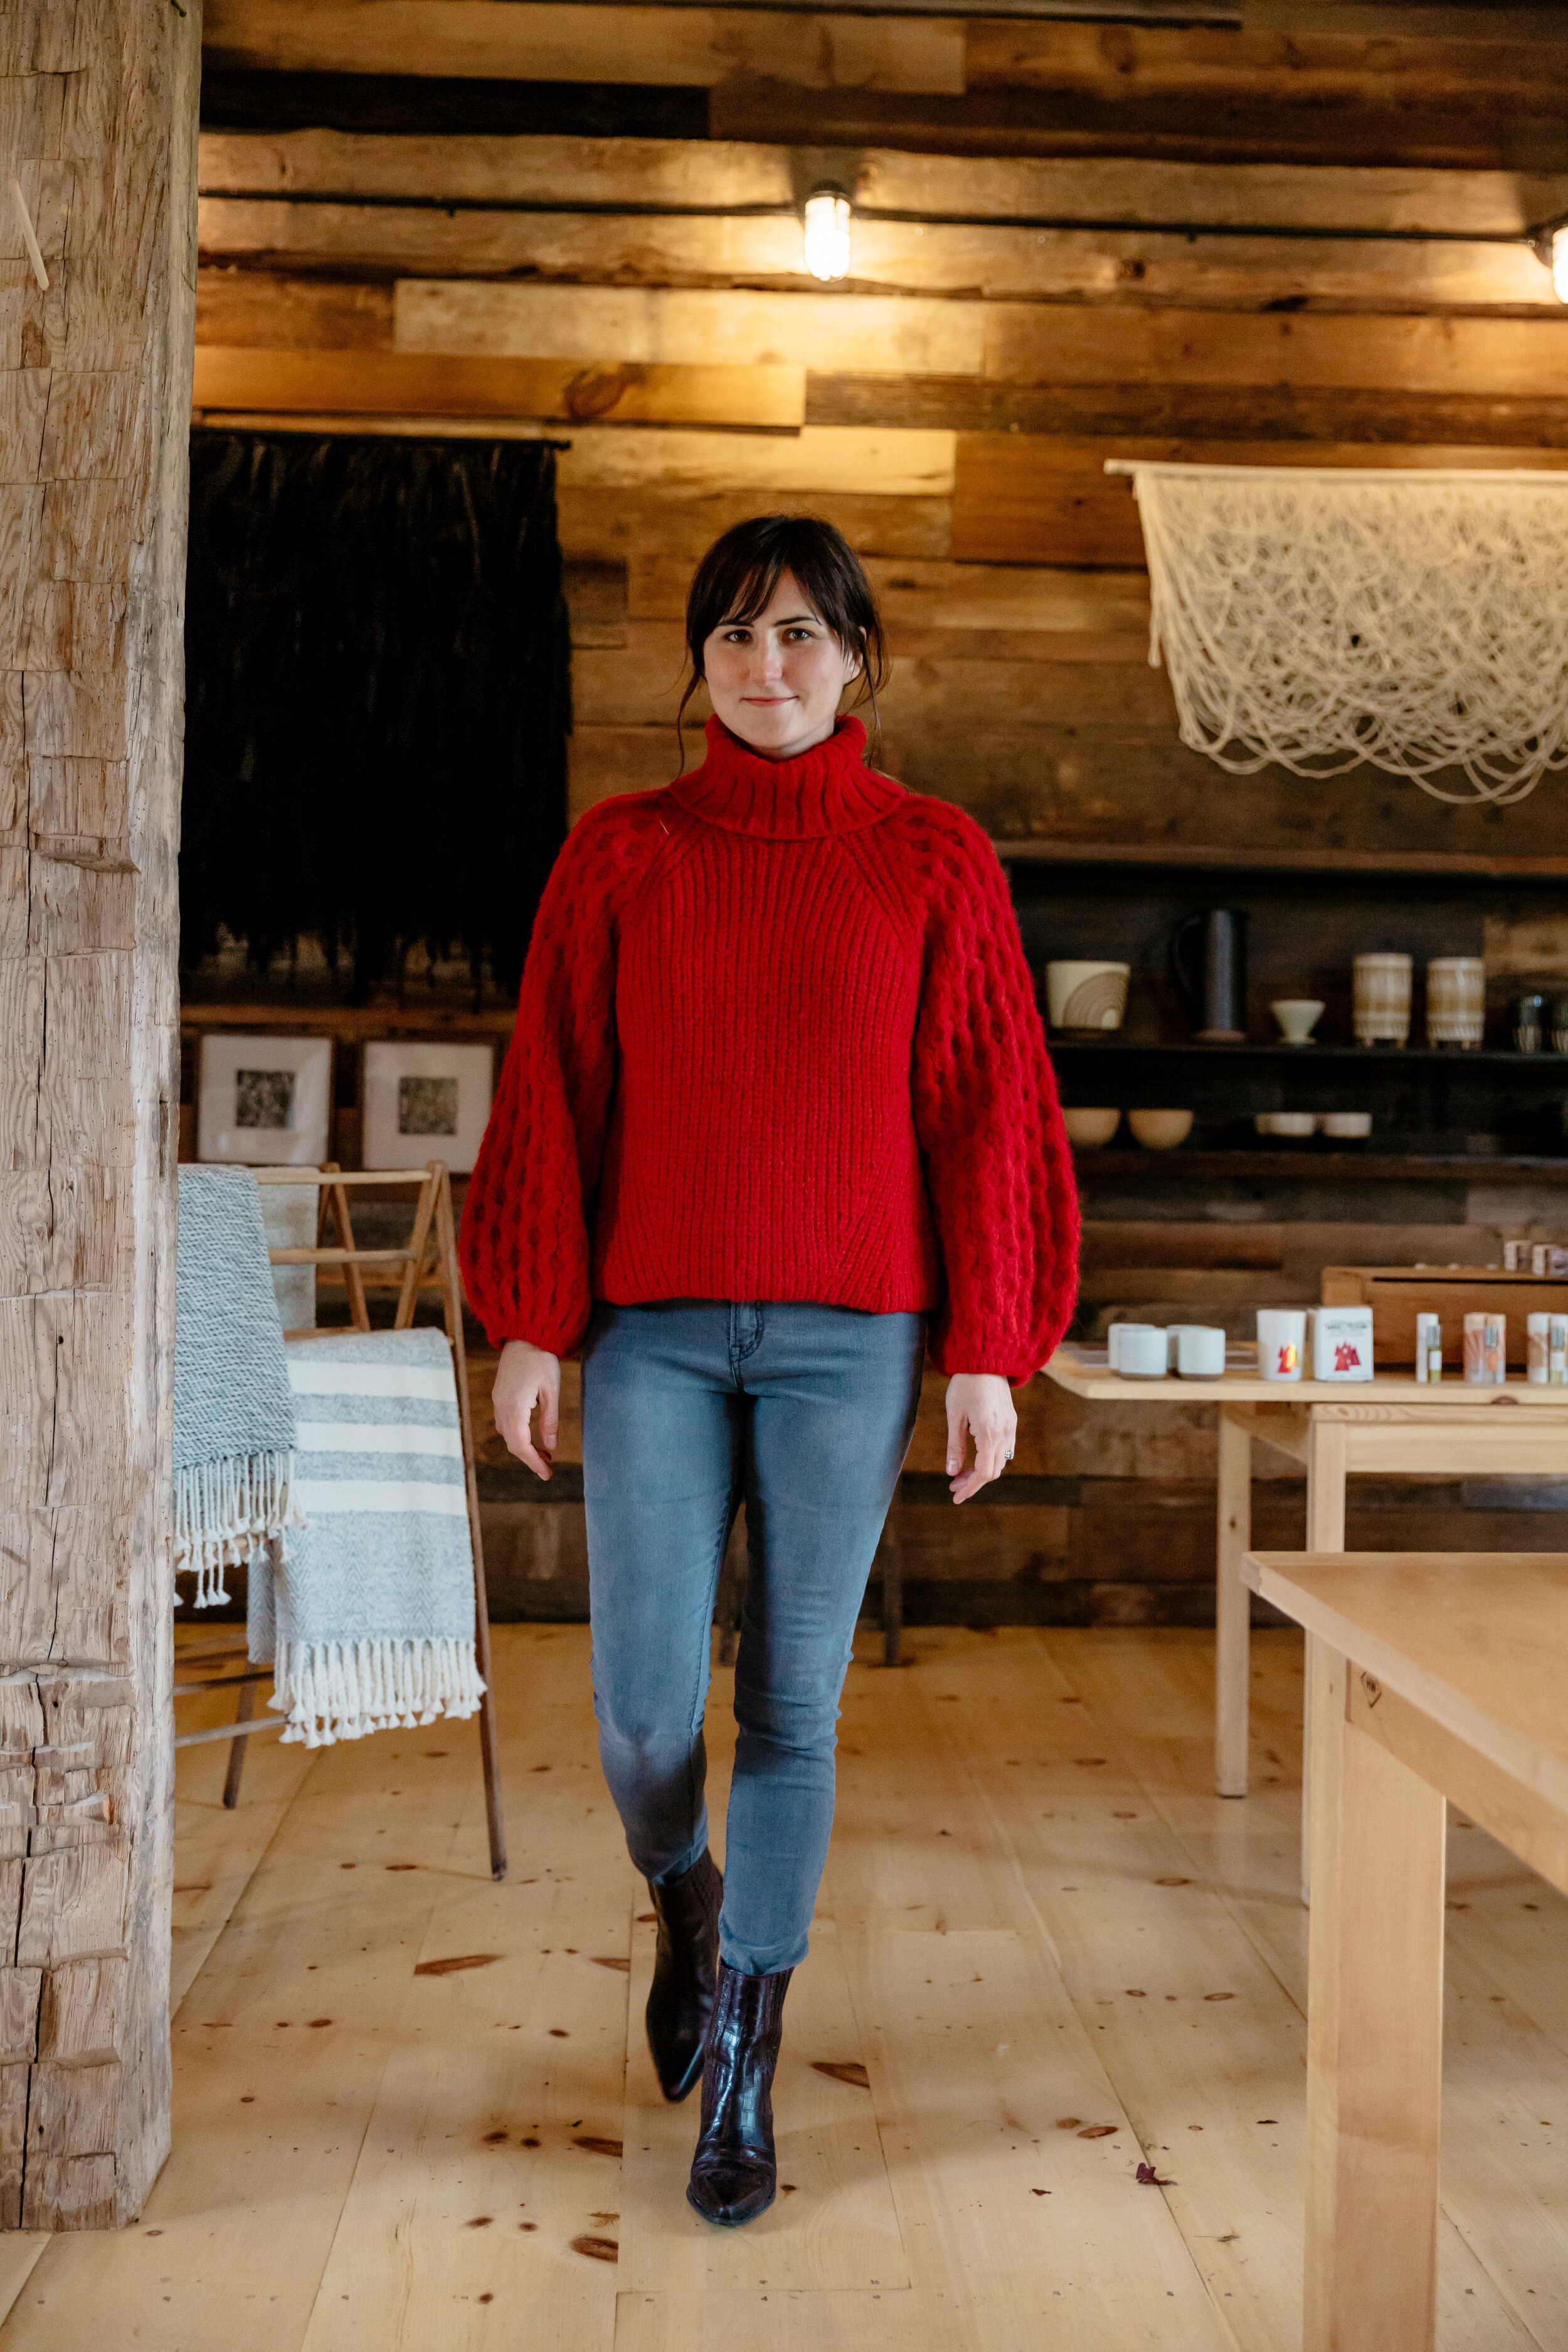 Dana wears Fall 19  Nina sweater  in Persimmon red. Nina is also available in Oatmeal melange and Navy.